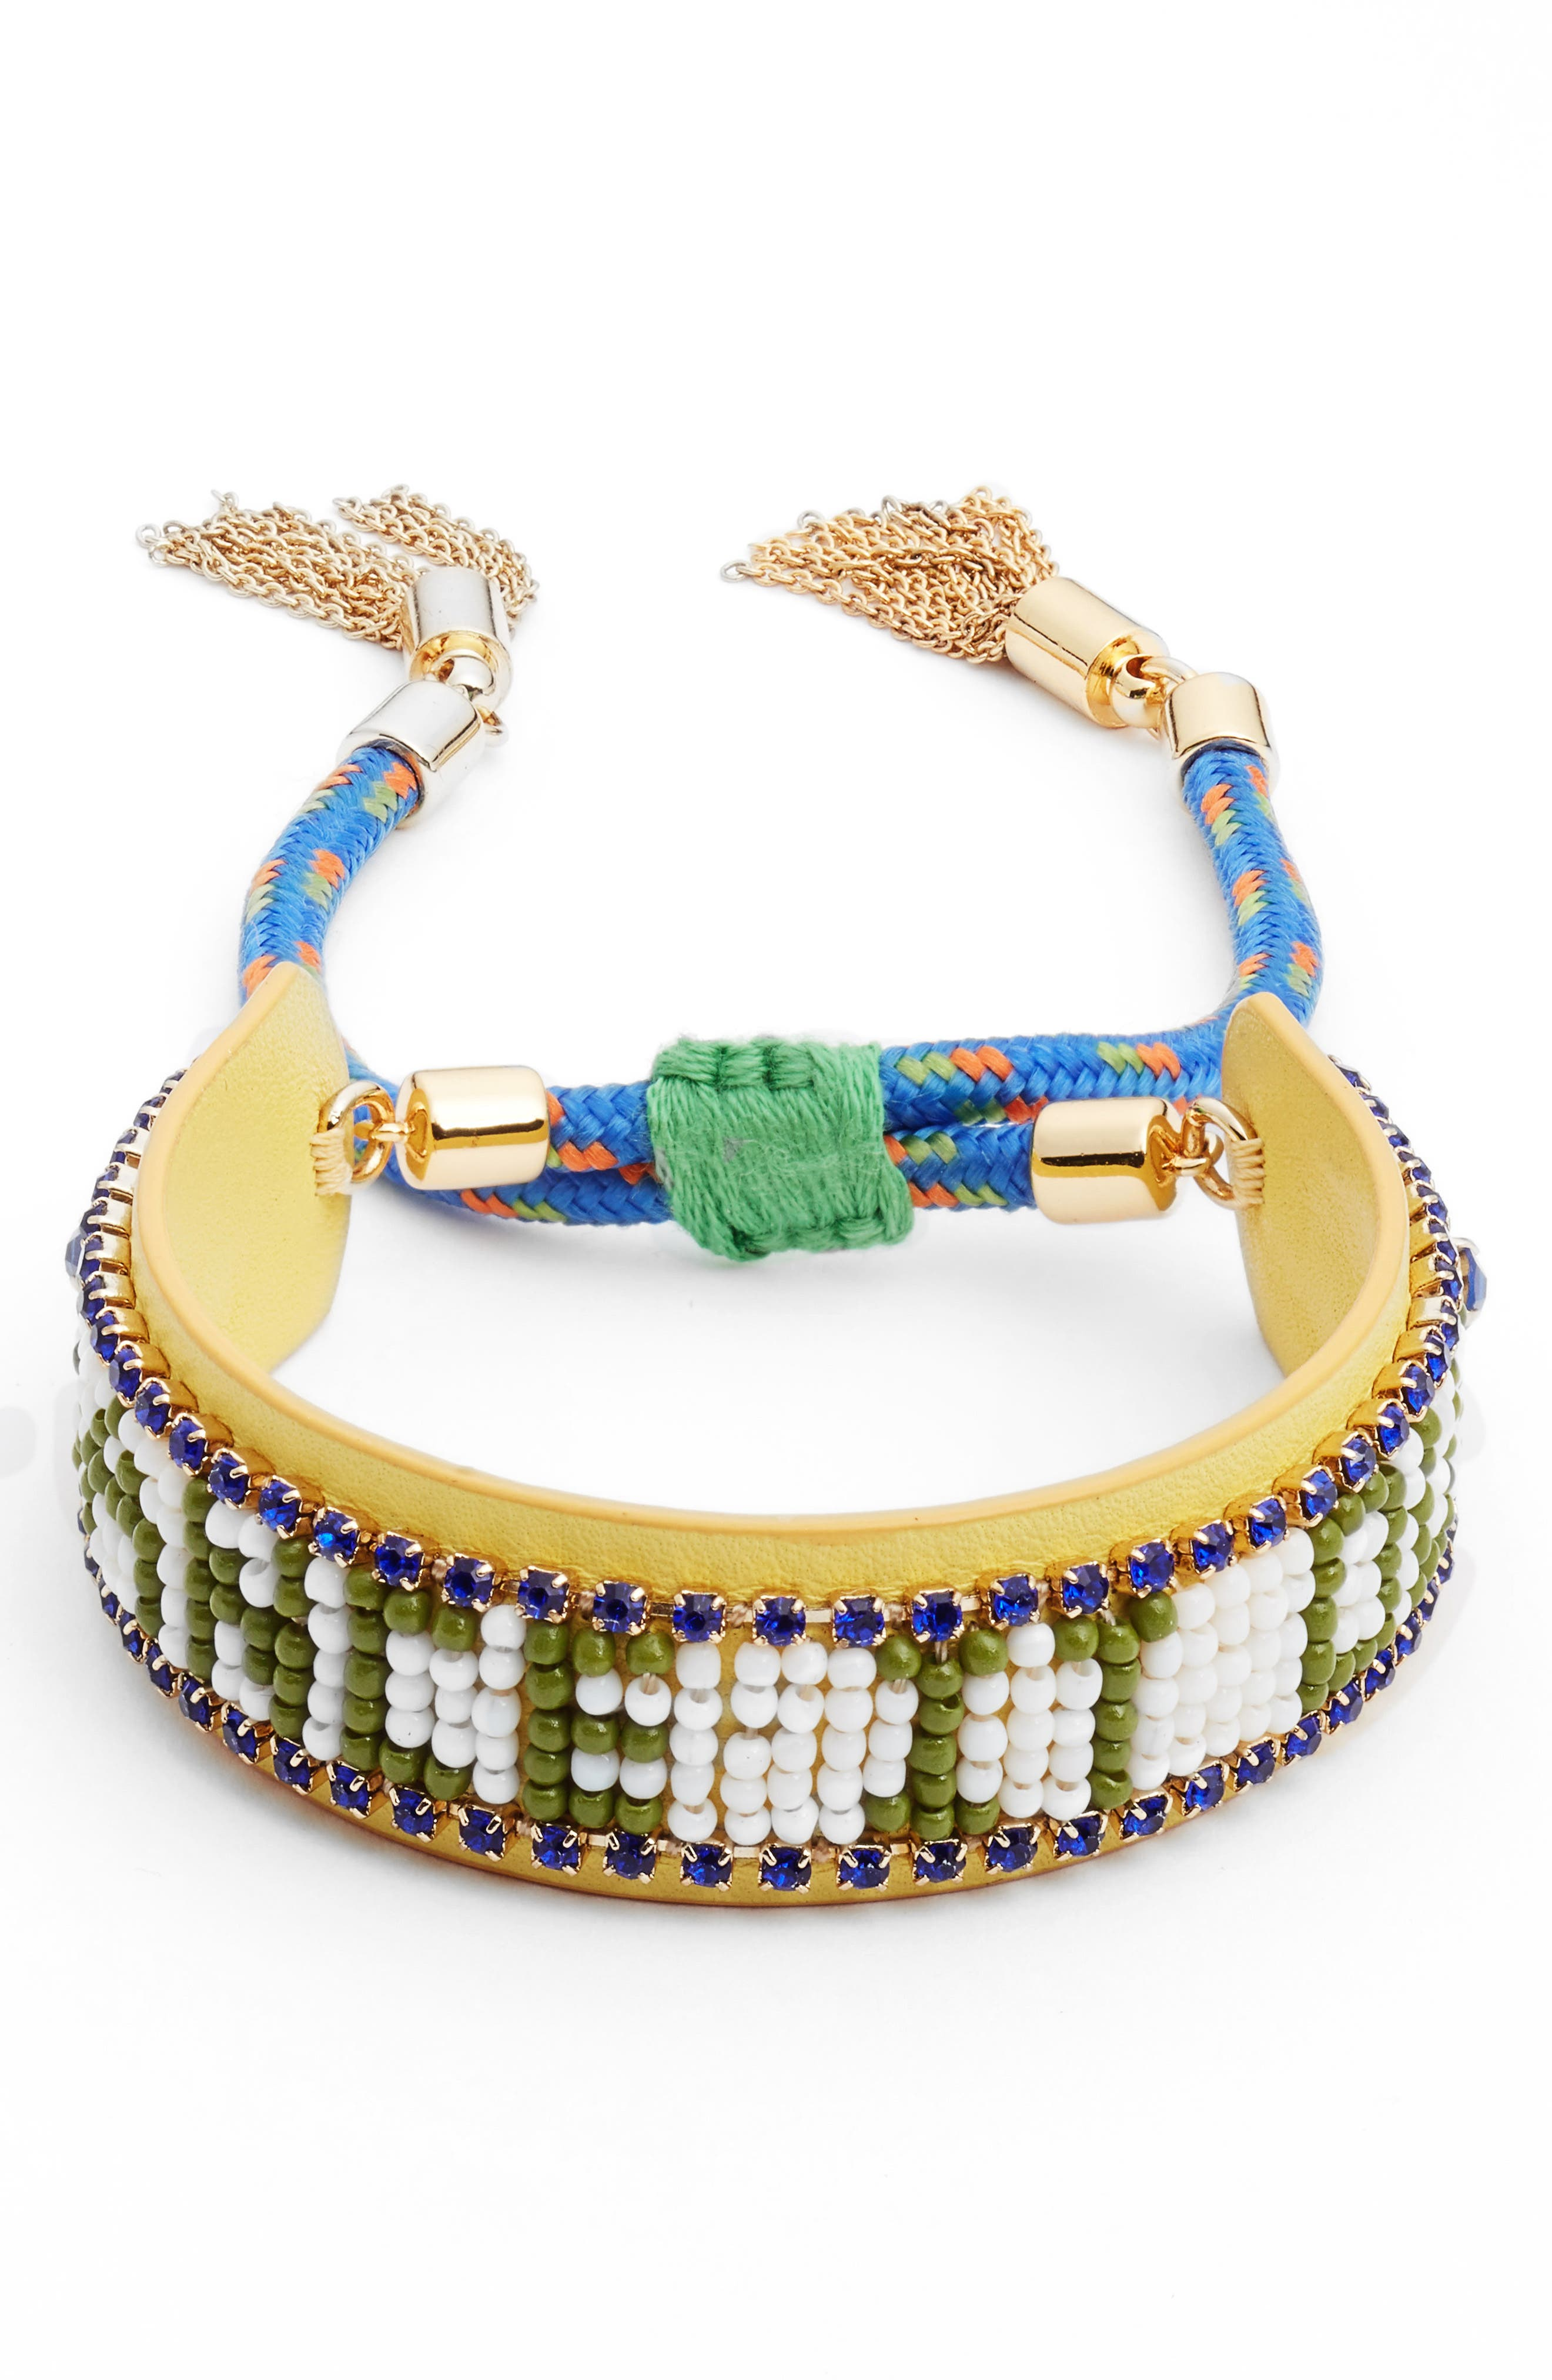 Dance It Out Seed Bead Bracelet,                         Main,                         color, Yellow Multi